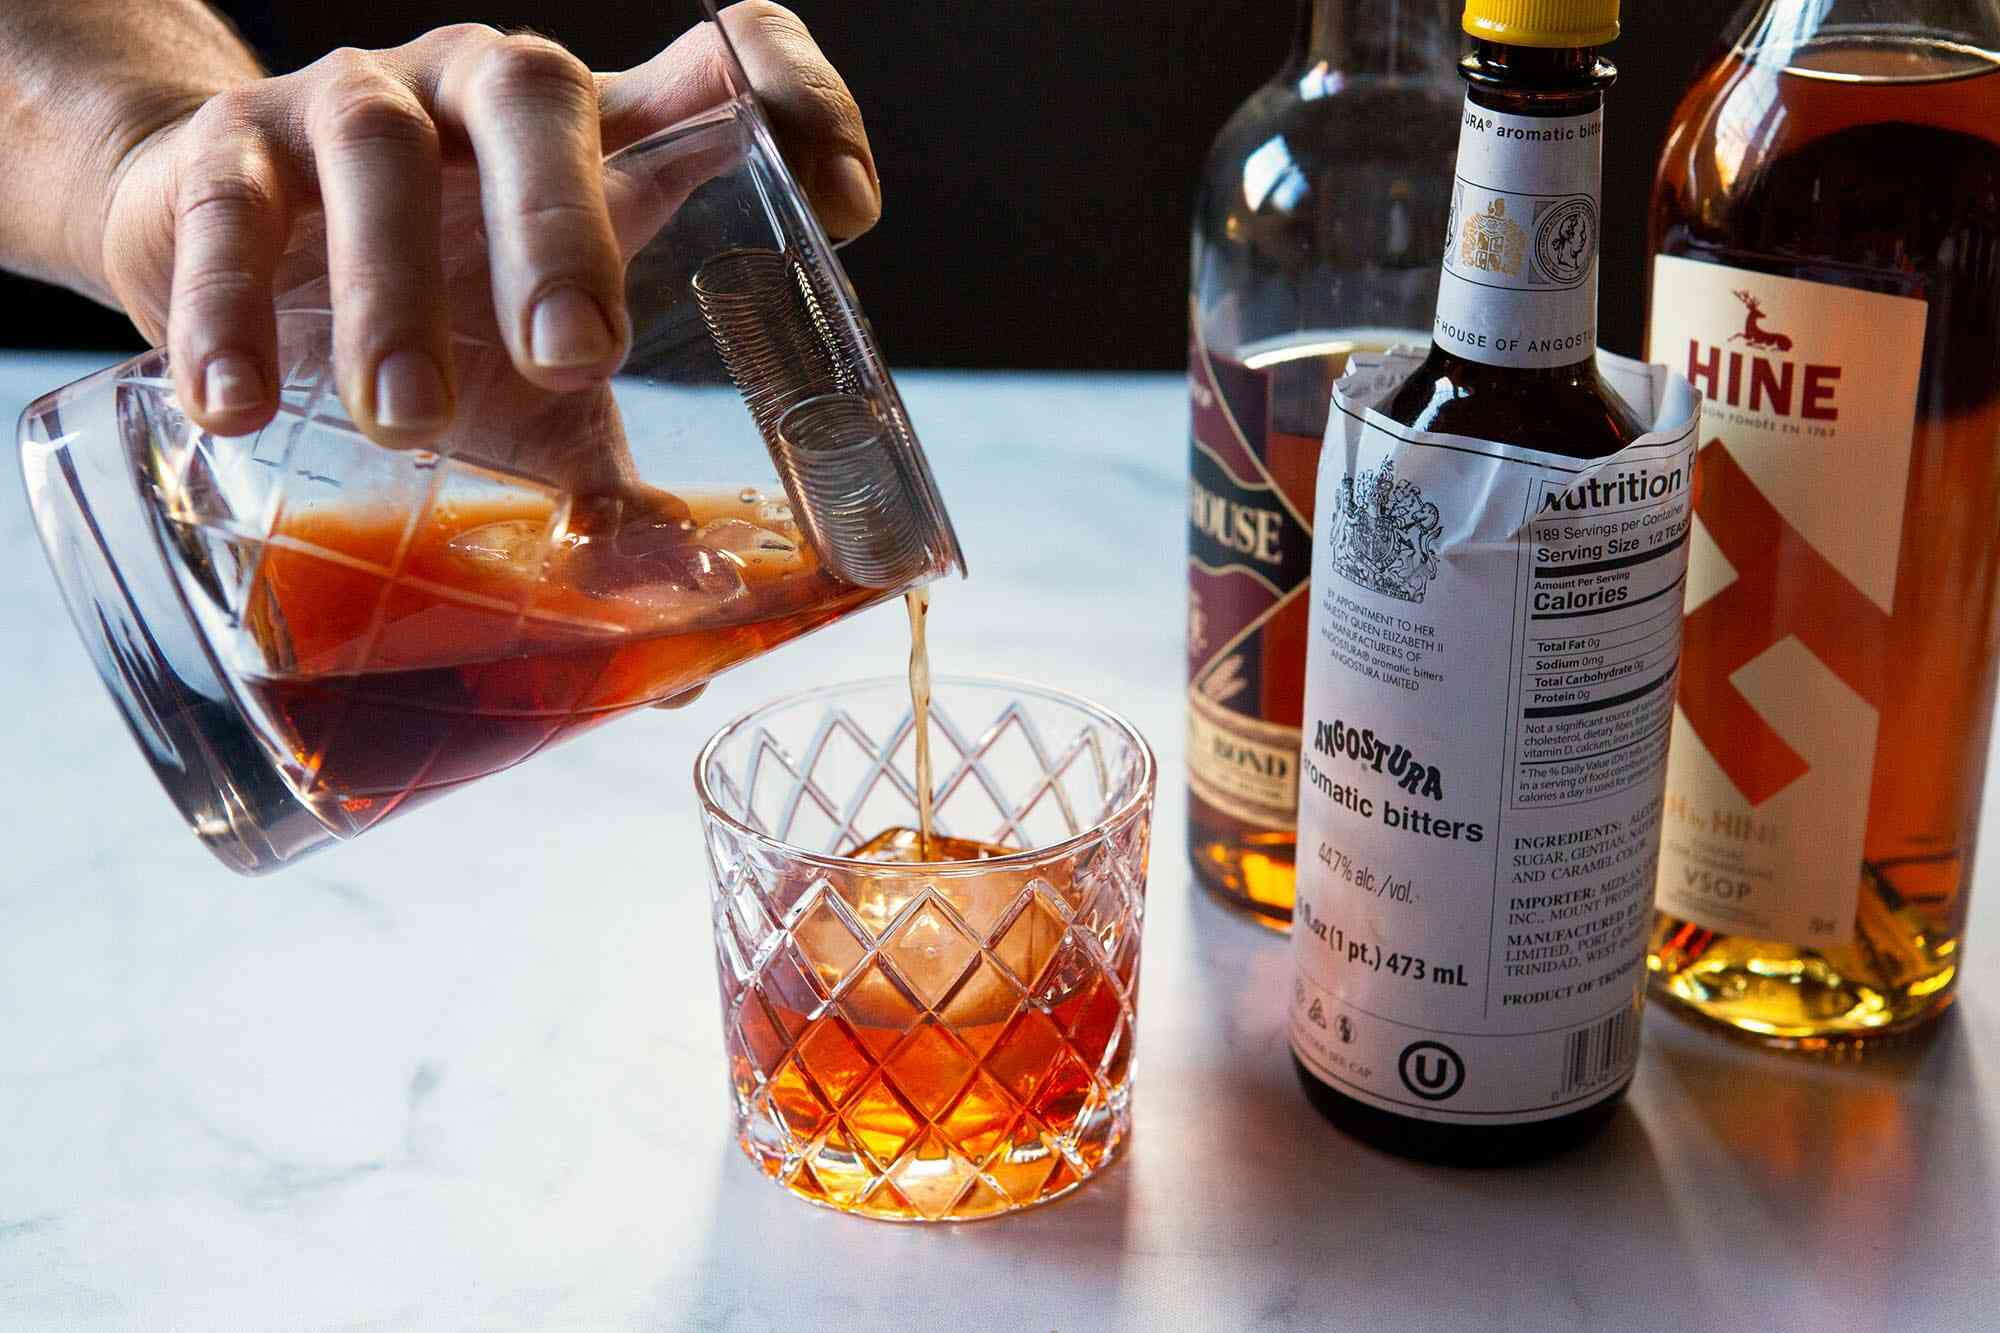 A Vieux carre is being strained into a whiskey glass. Bottles for the cocktail are to the right.